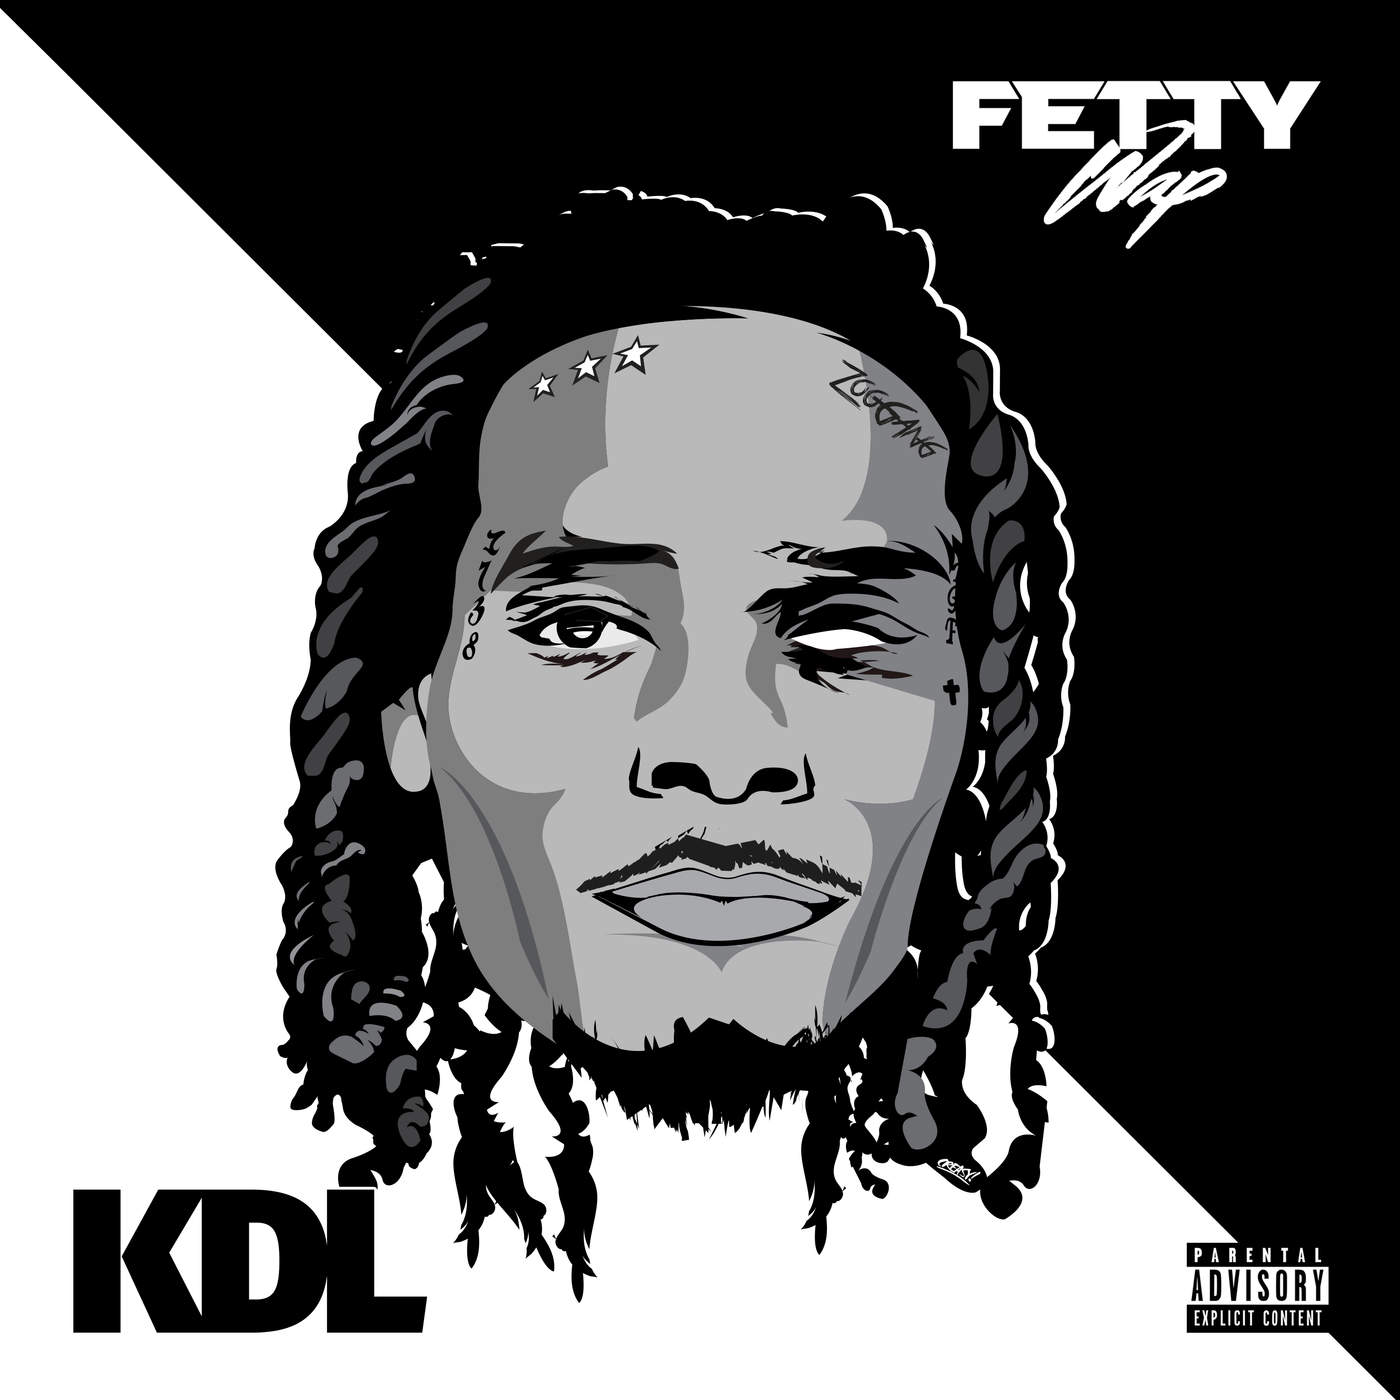 KDL & Fetty Wap - With You - Single Cover